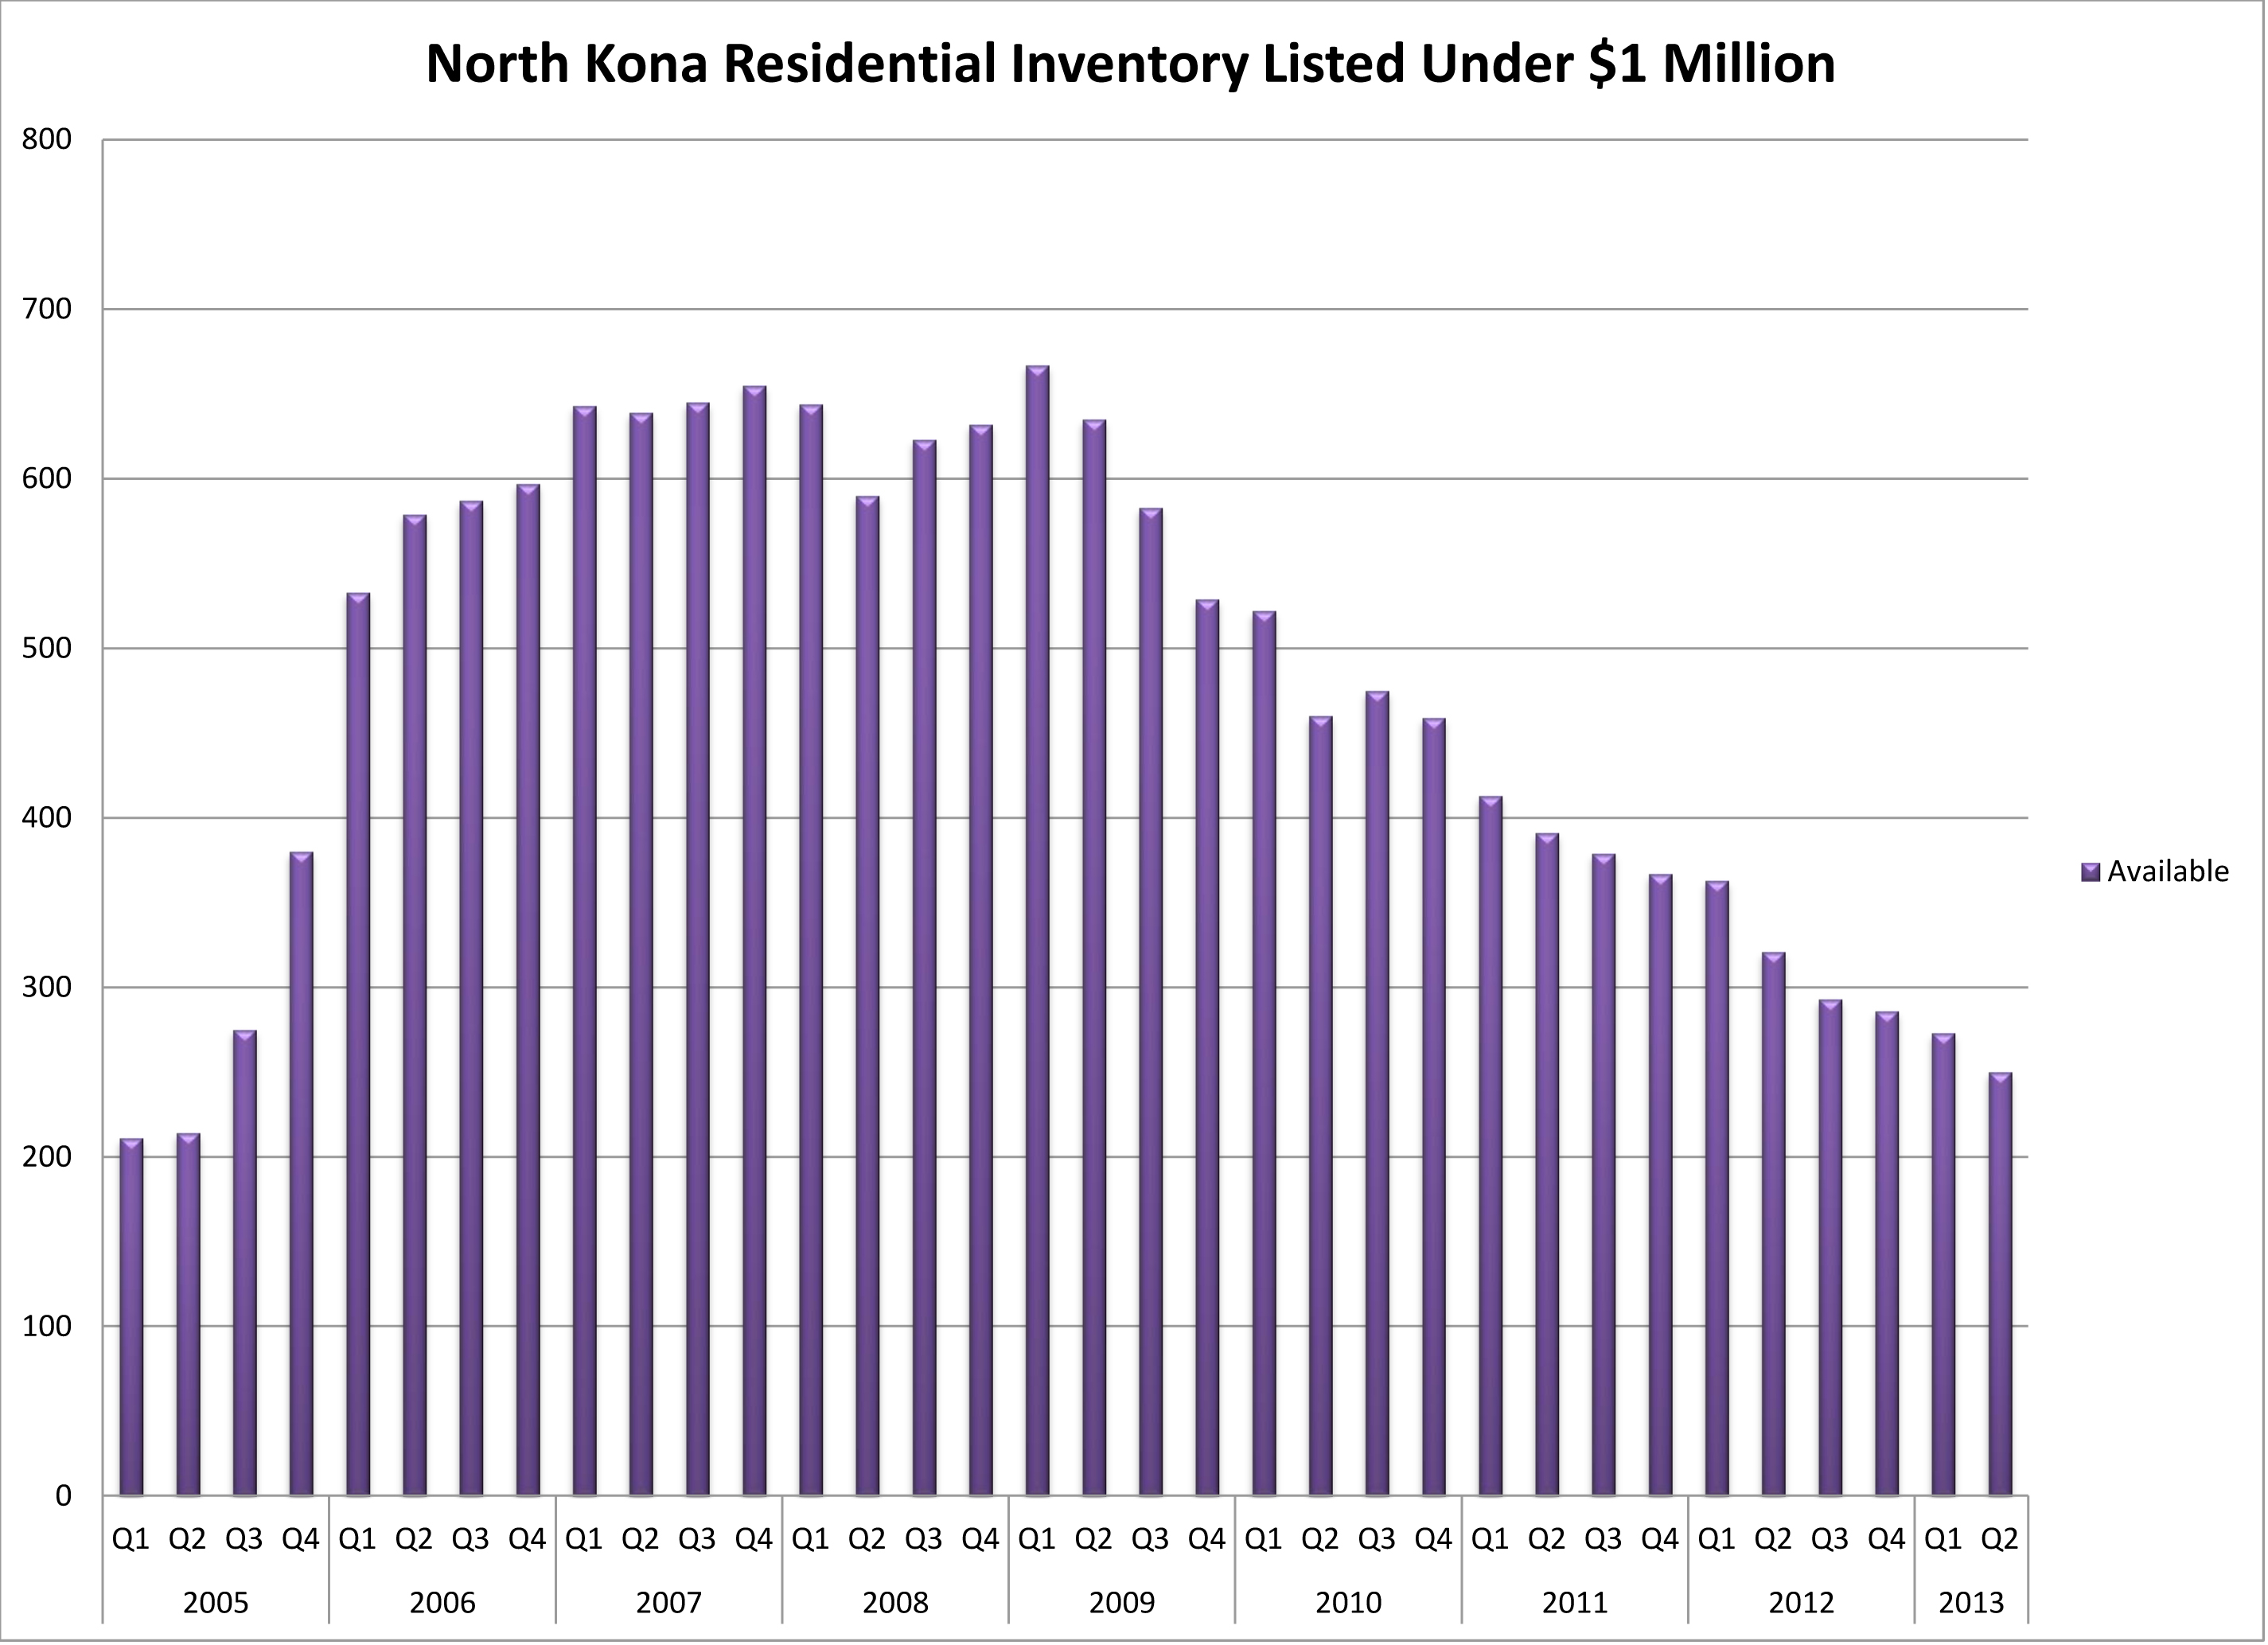 NK Res U $1M 2005 to Q2 2013 inventory